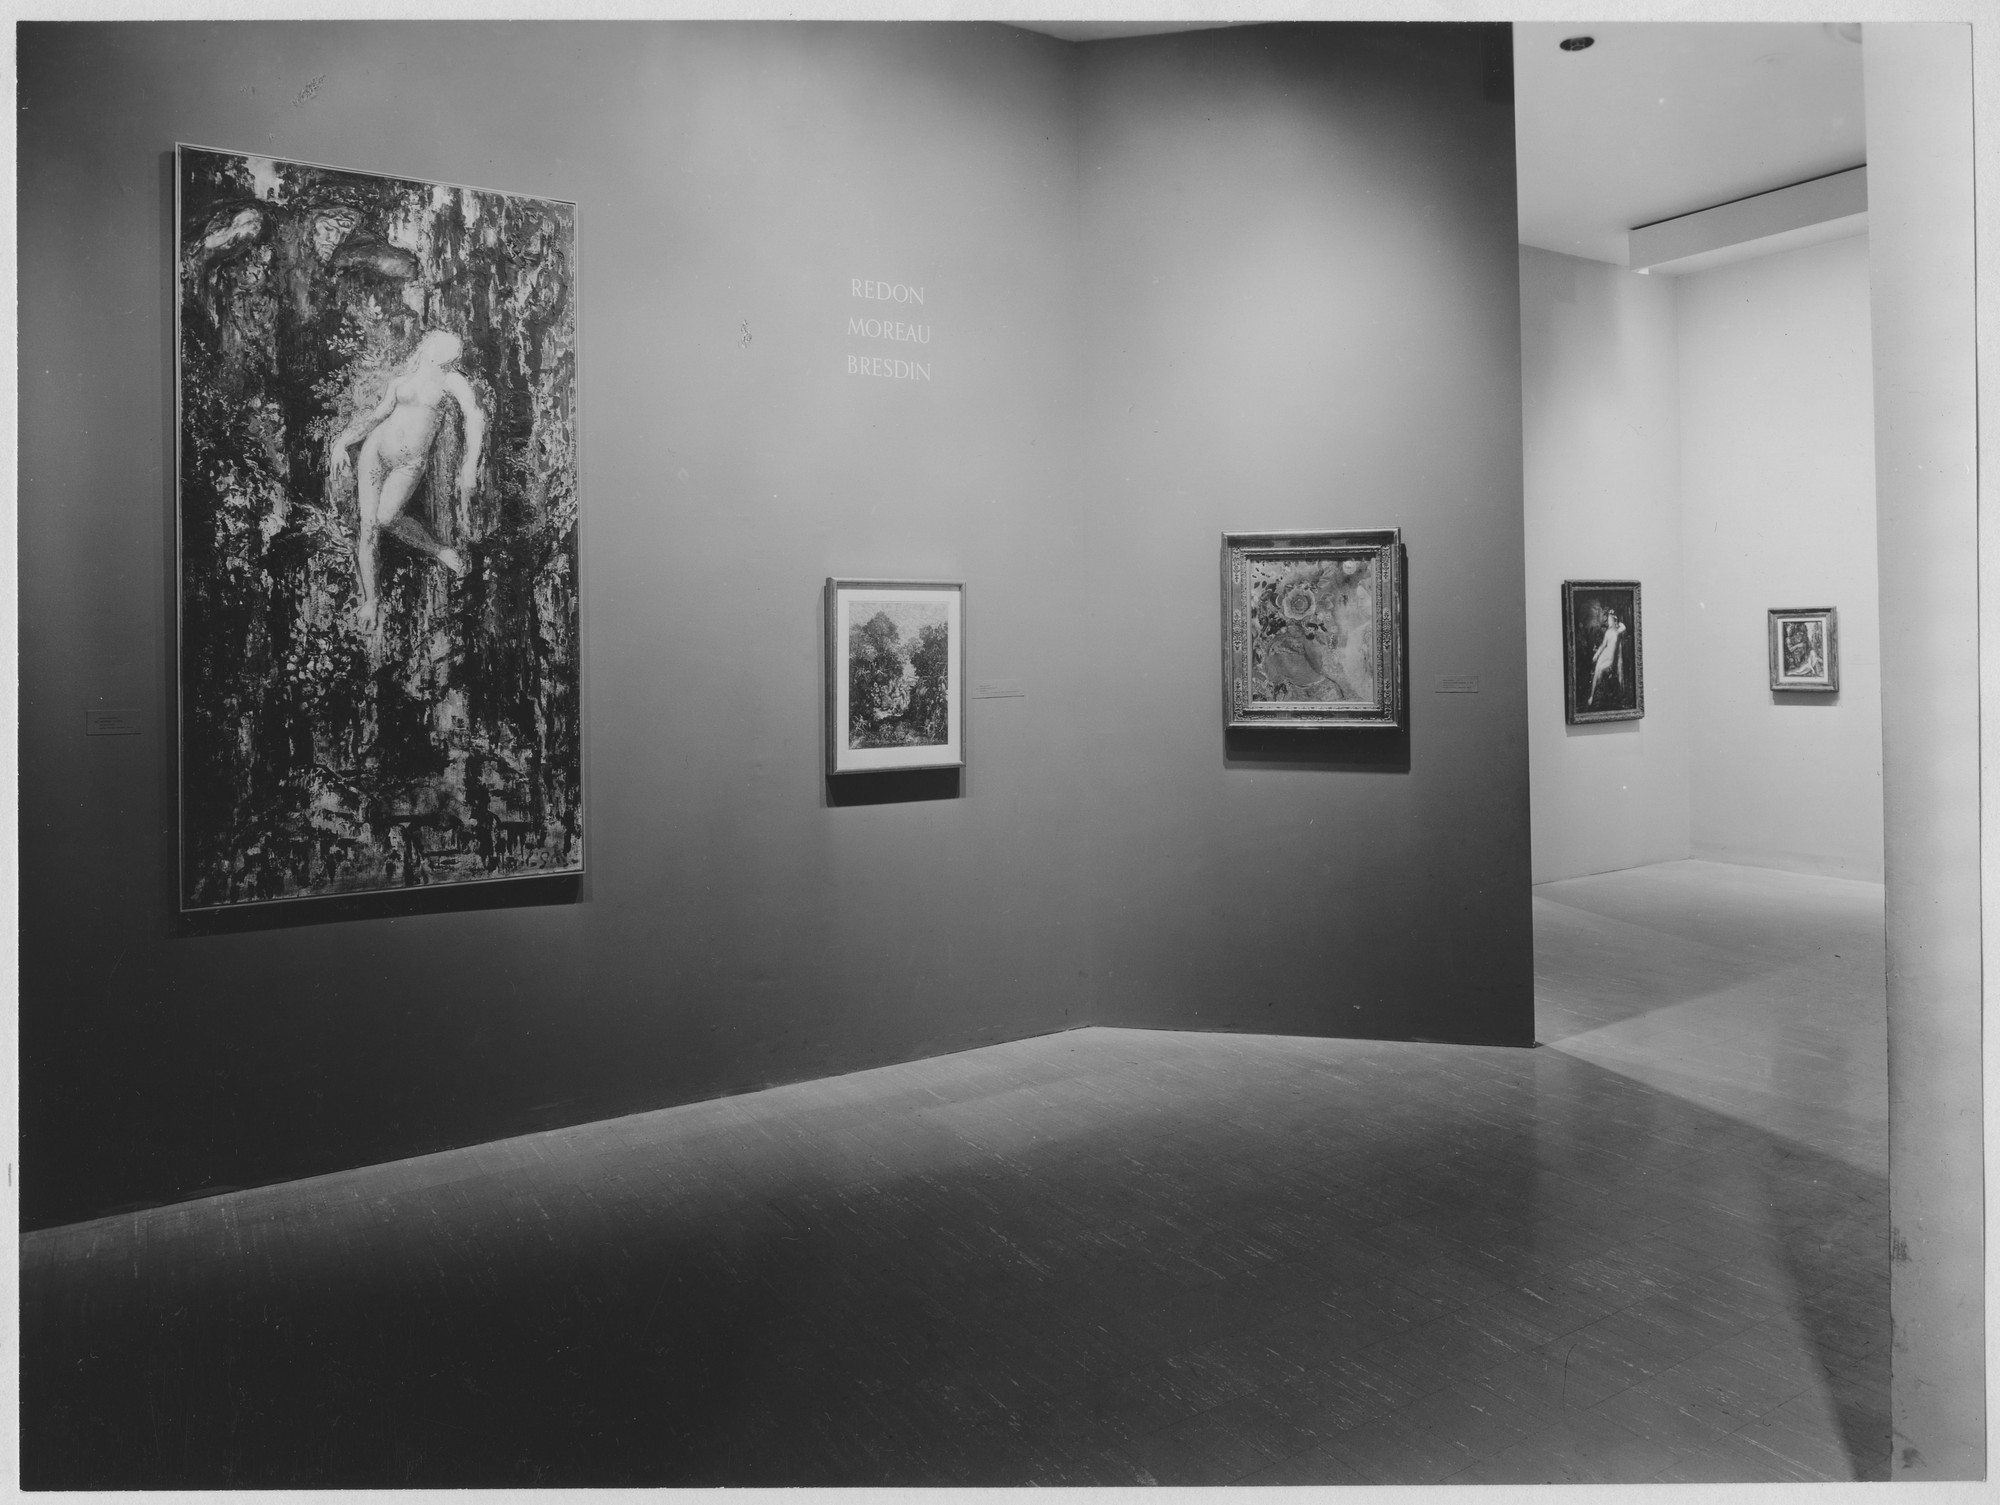 "Installation view of the exhibition, ""Redon, Moreau, Bresdin."" December 6, 1961–February 25, 1962. Photographic Archive. The Museum of Modern Art Archives, New York. IN699.1. Photograph by Soichi Sunami."